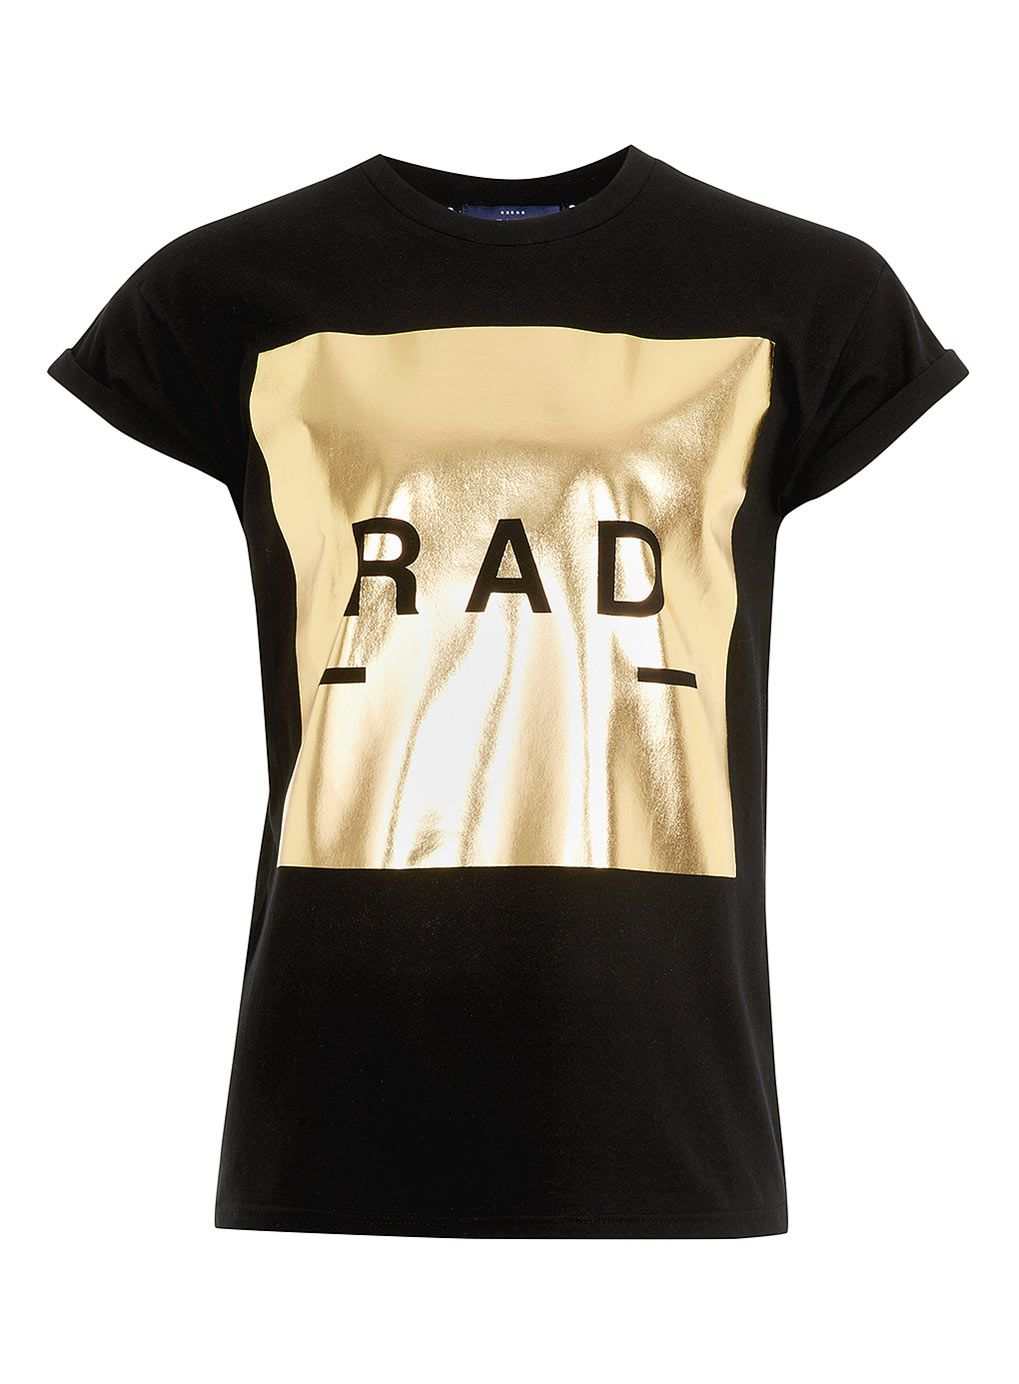 Black Rad Gold Foil Print T Shirt Menswear For You Gold T